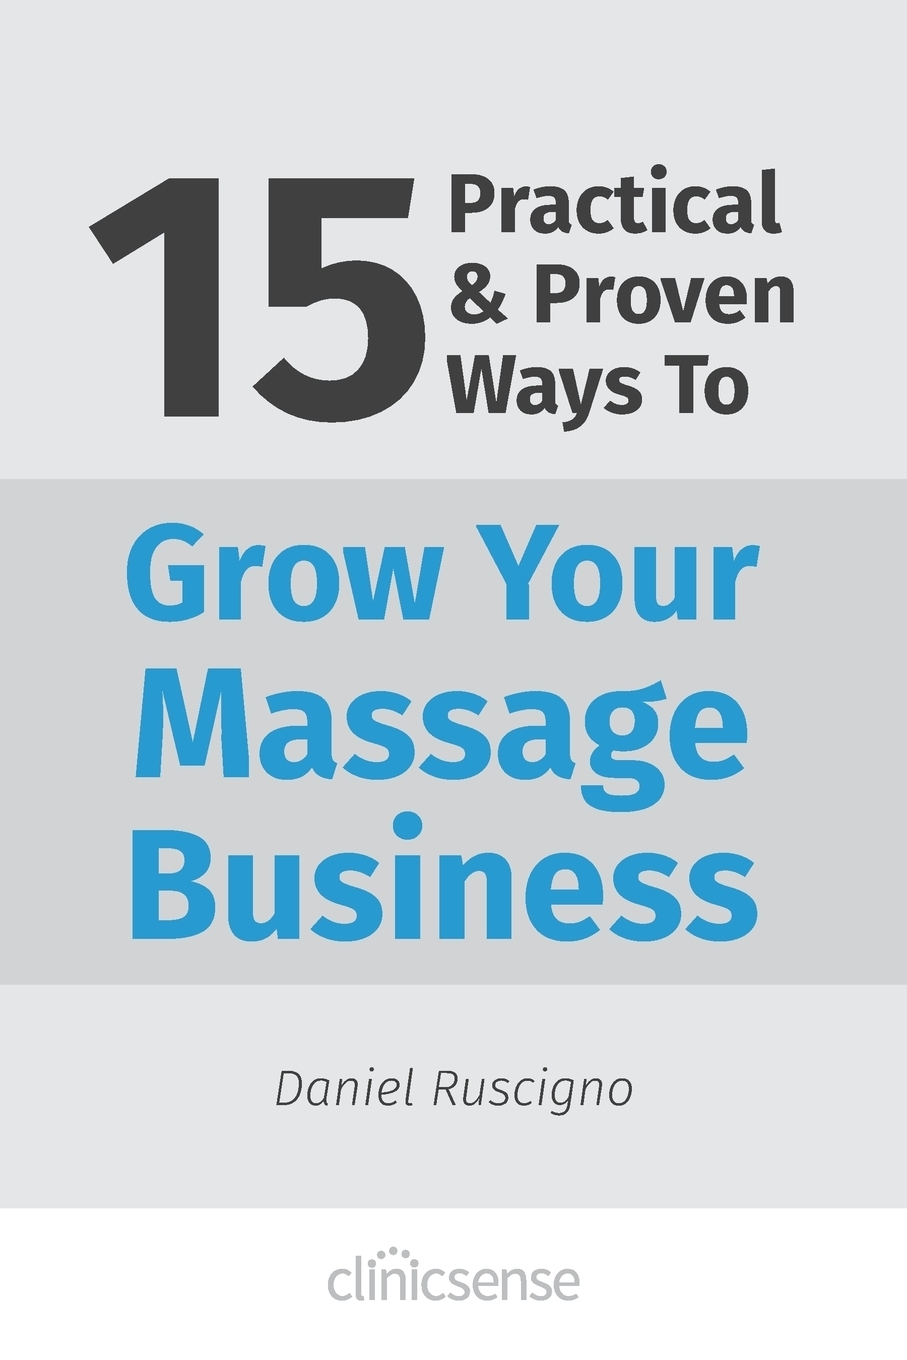 Daniel Ruscigno. 15 Practical & Proven Ways To Grow Your Massage Business